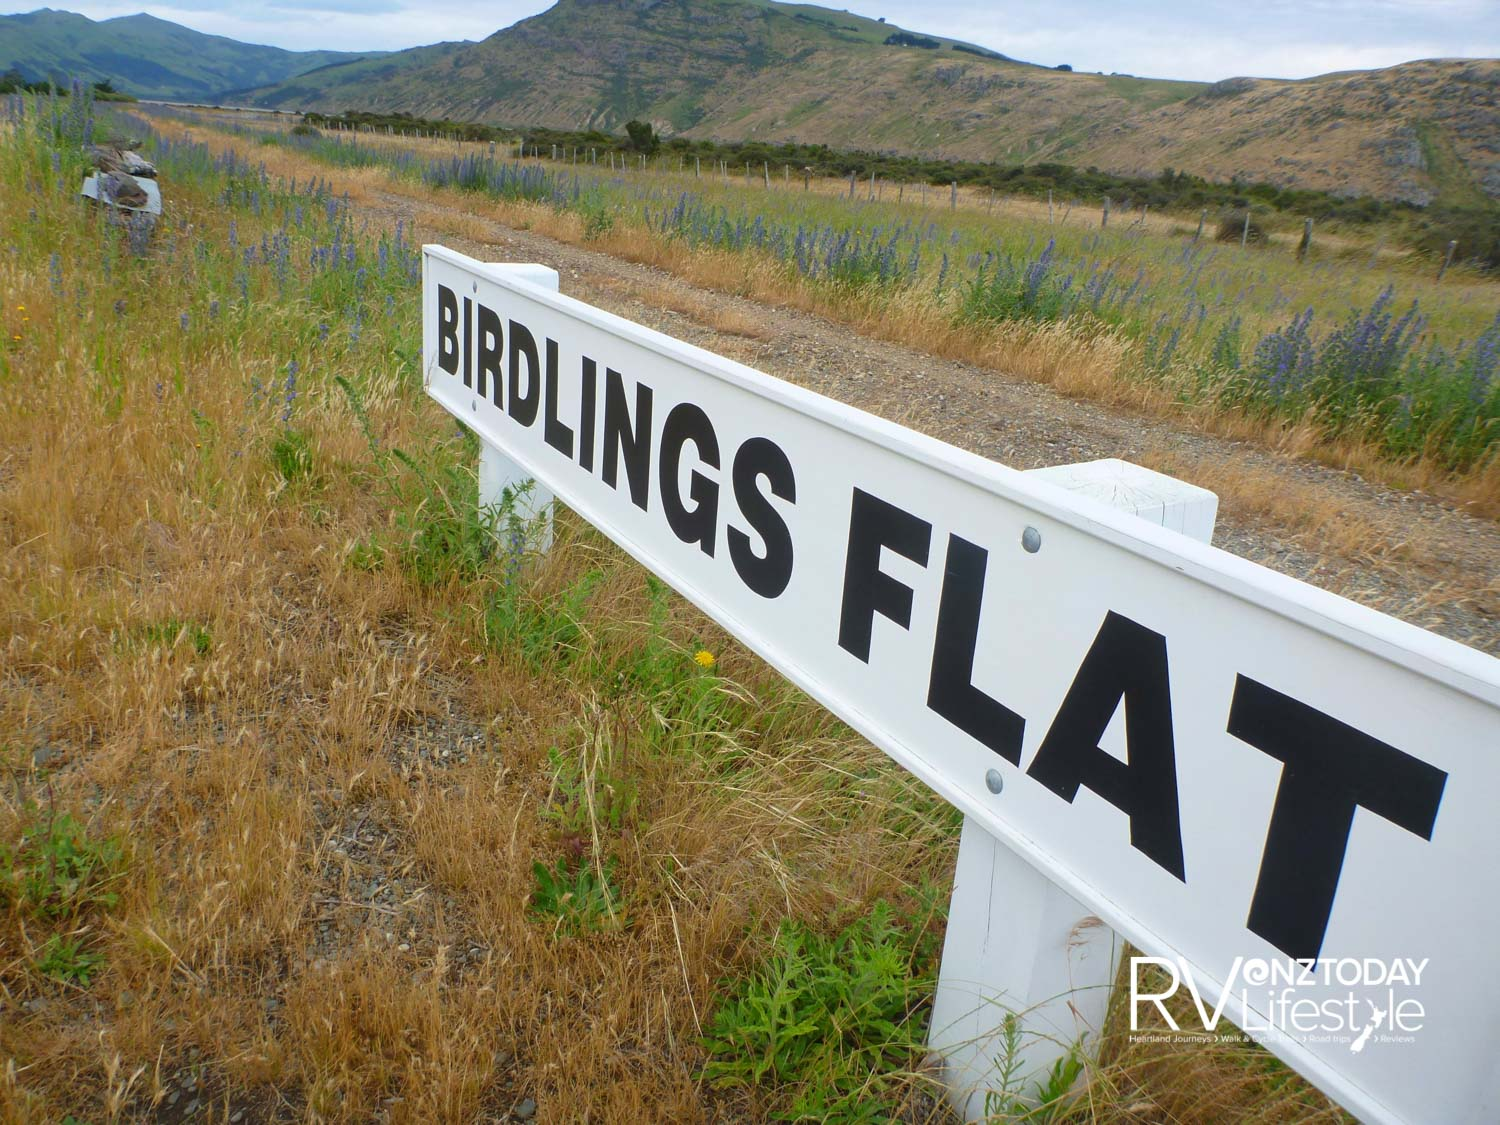 Birdlings Flat, a gem of a place